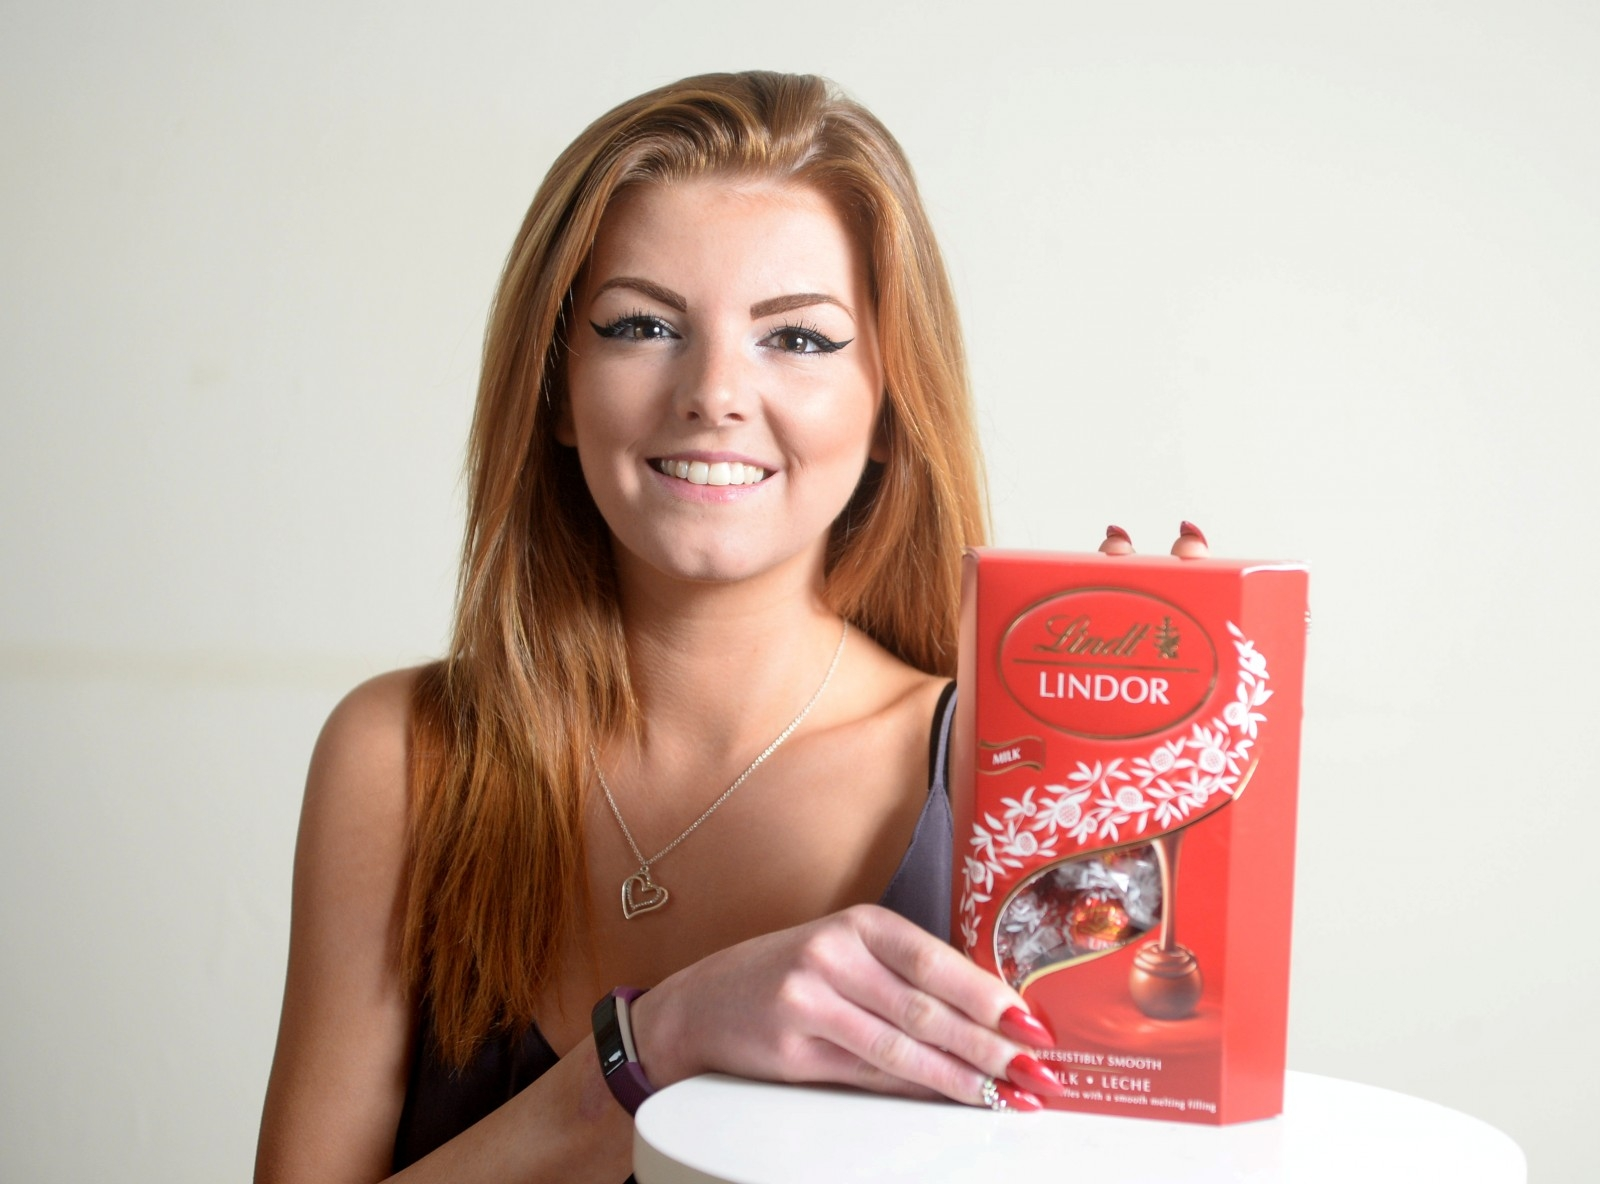 Former Anorexic Has Spoken About How Chocolate Saved Her Life